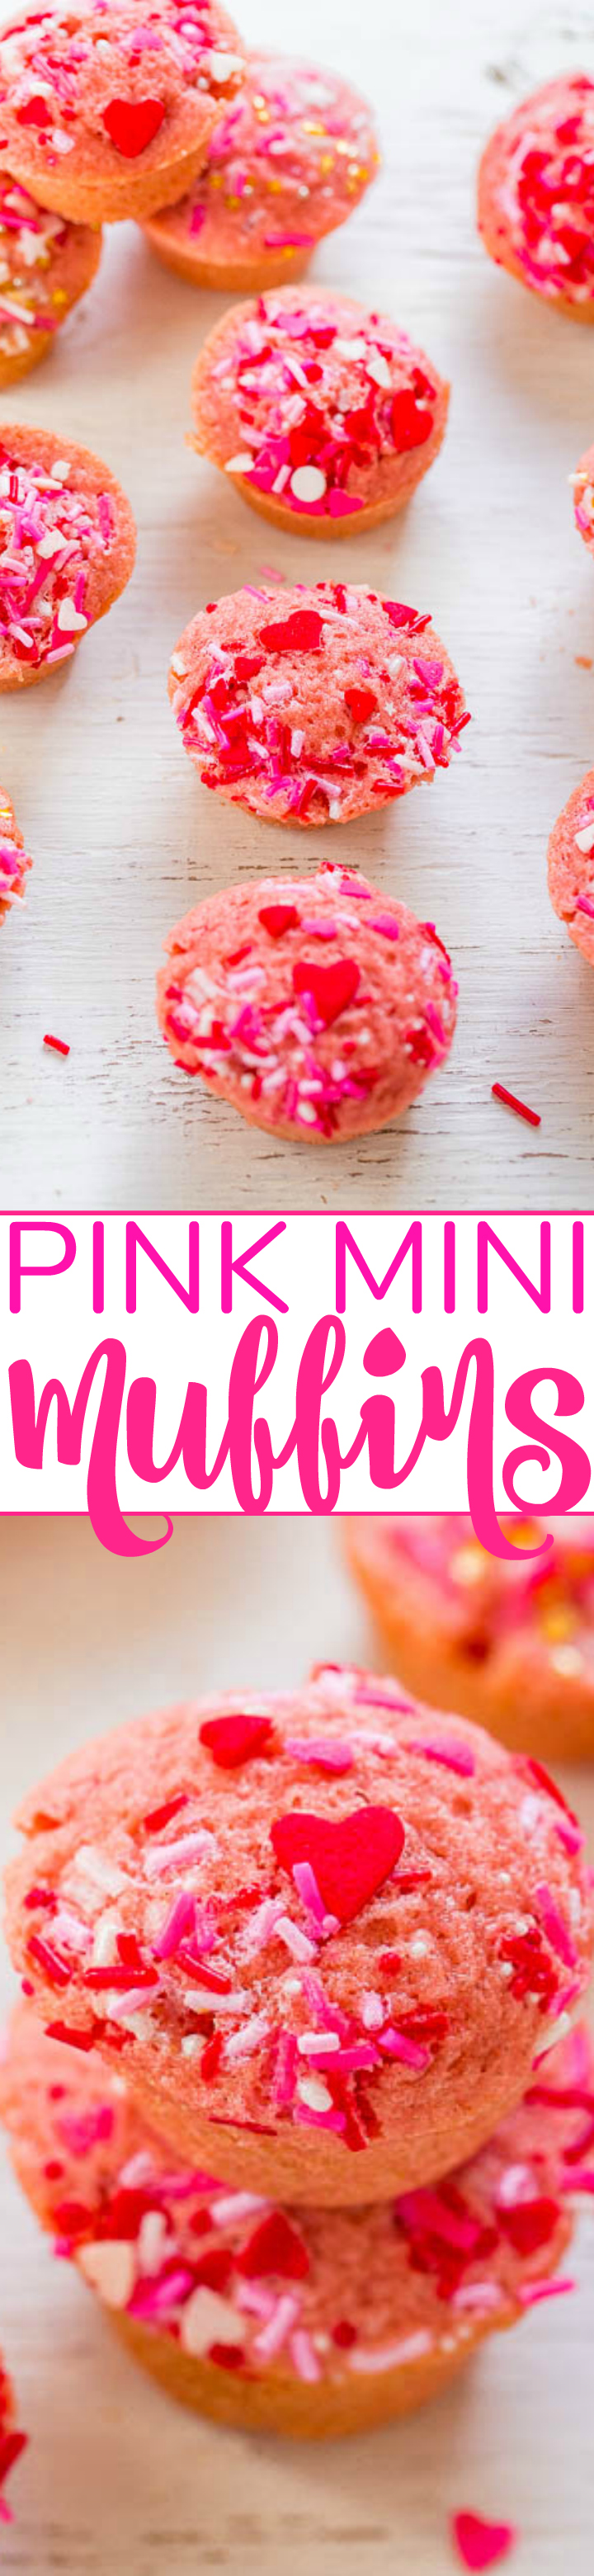 Pink Mini Muffins - Fast, EASY, no-mixer muffins that are accidentally VEGAN!! No butter, dairy, or eggs, and you won't miss them! Pink mini muffins with sprinkles on top will make everyone SMILE this Valentine's Day!!